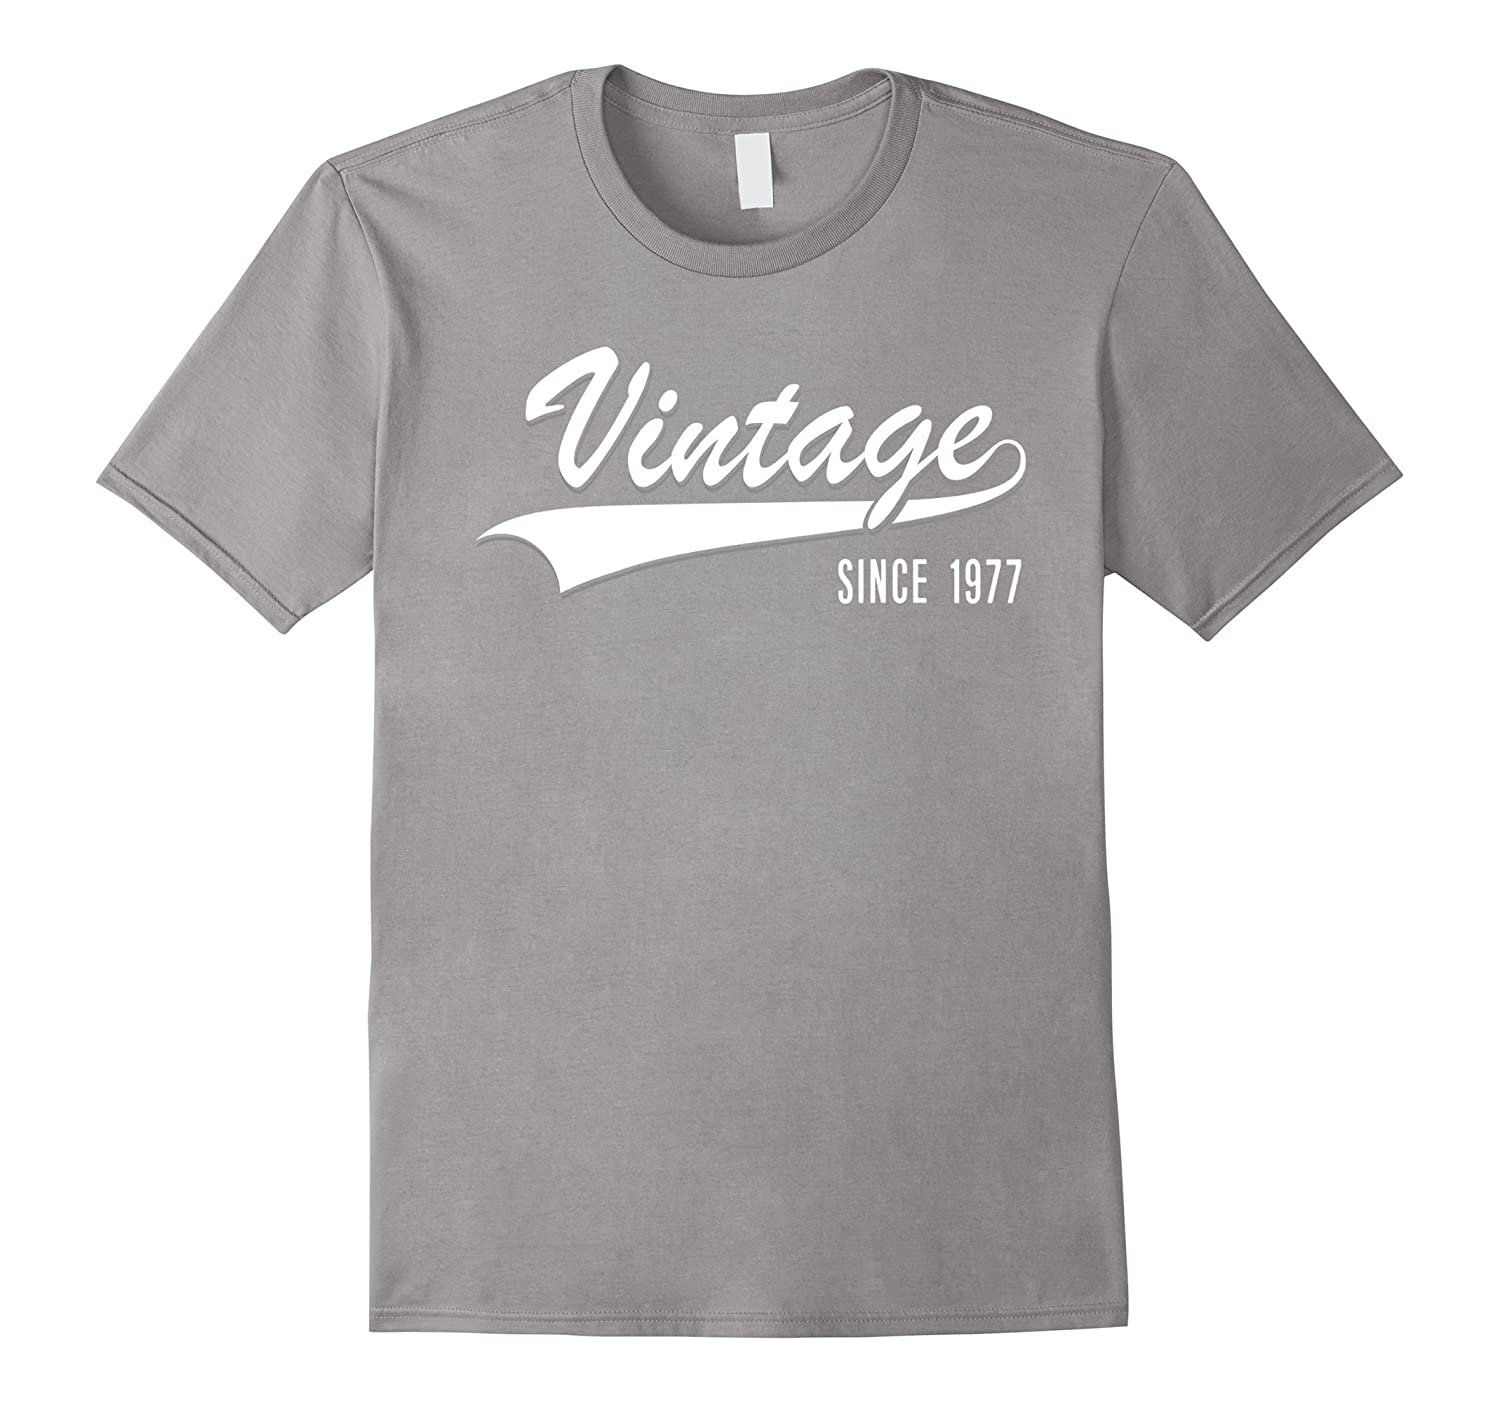 40th Birthday gift shirt Vintage since 1977 40 years old T-T-Shirt